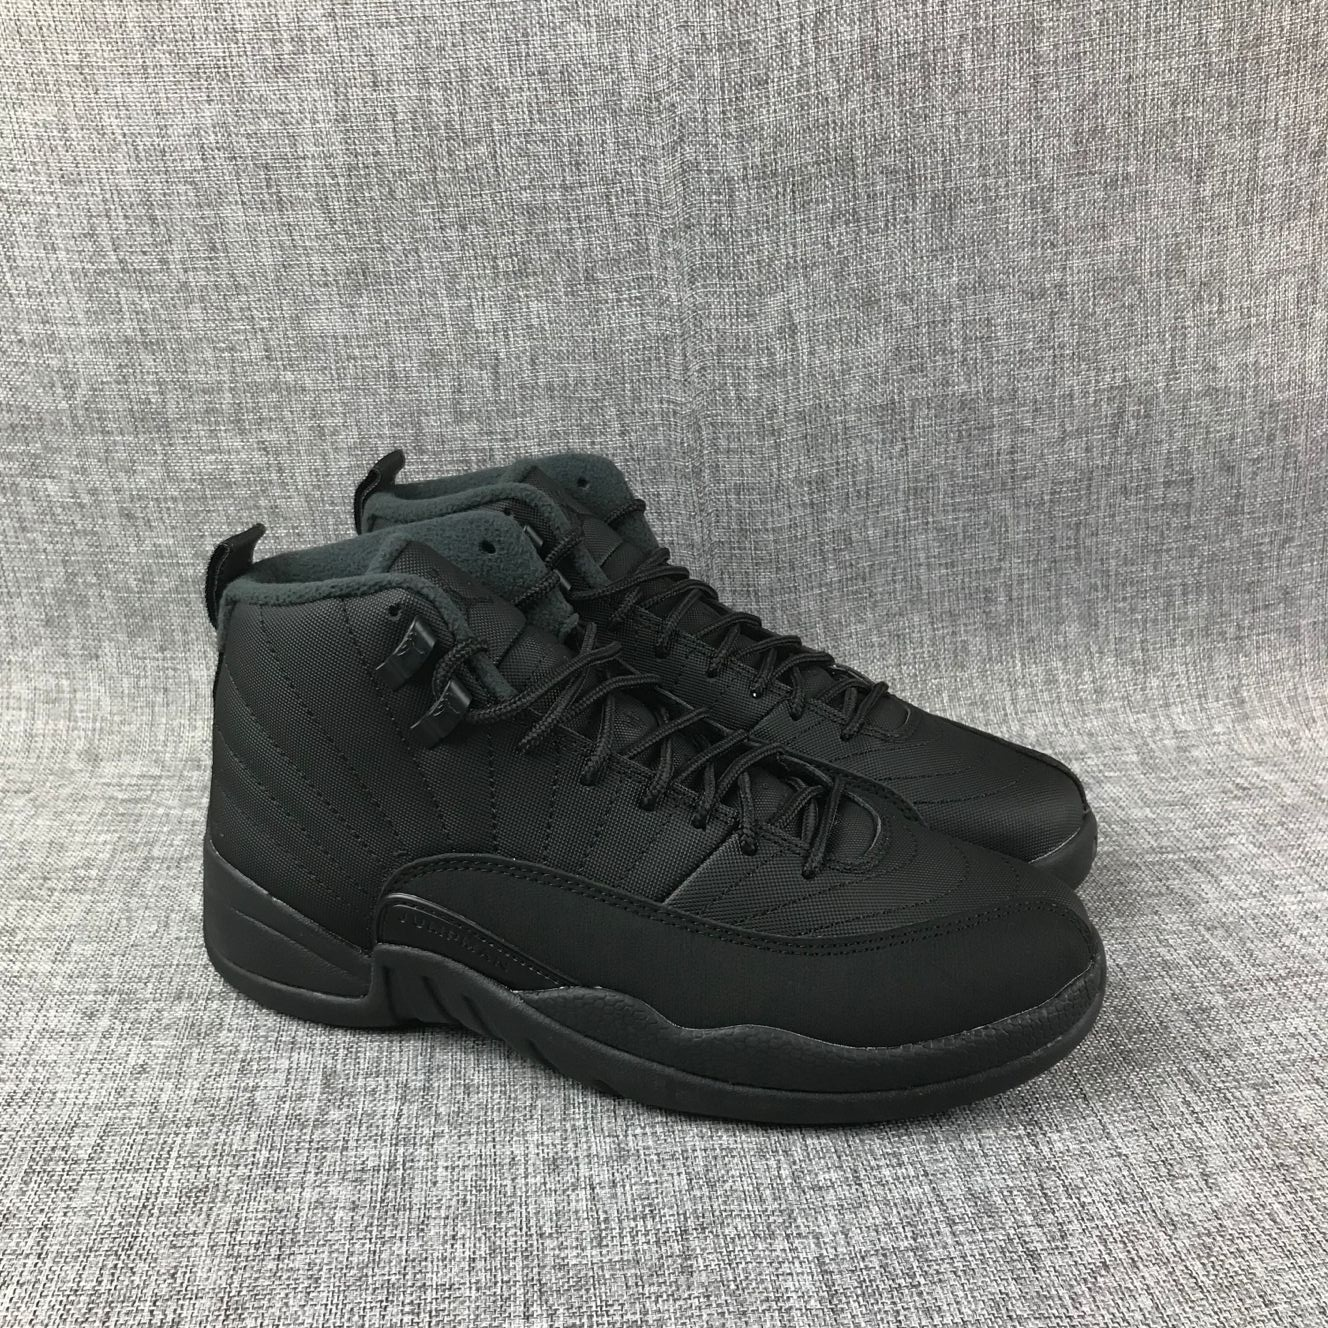 New Air Jordan 12 Retro Devil All Black Shoes